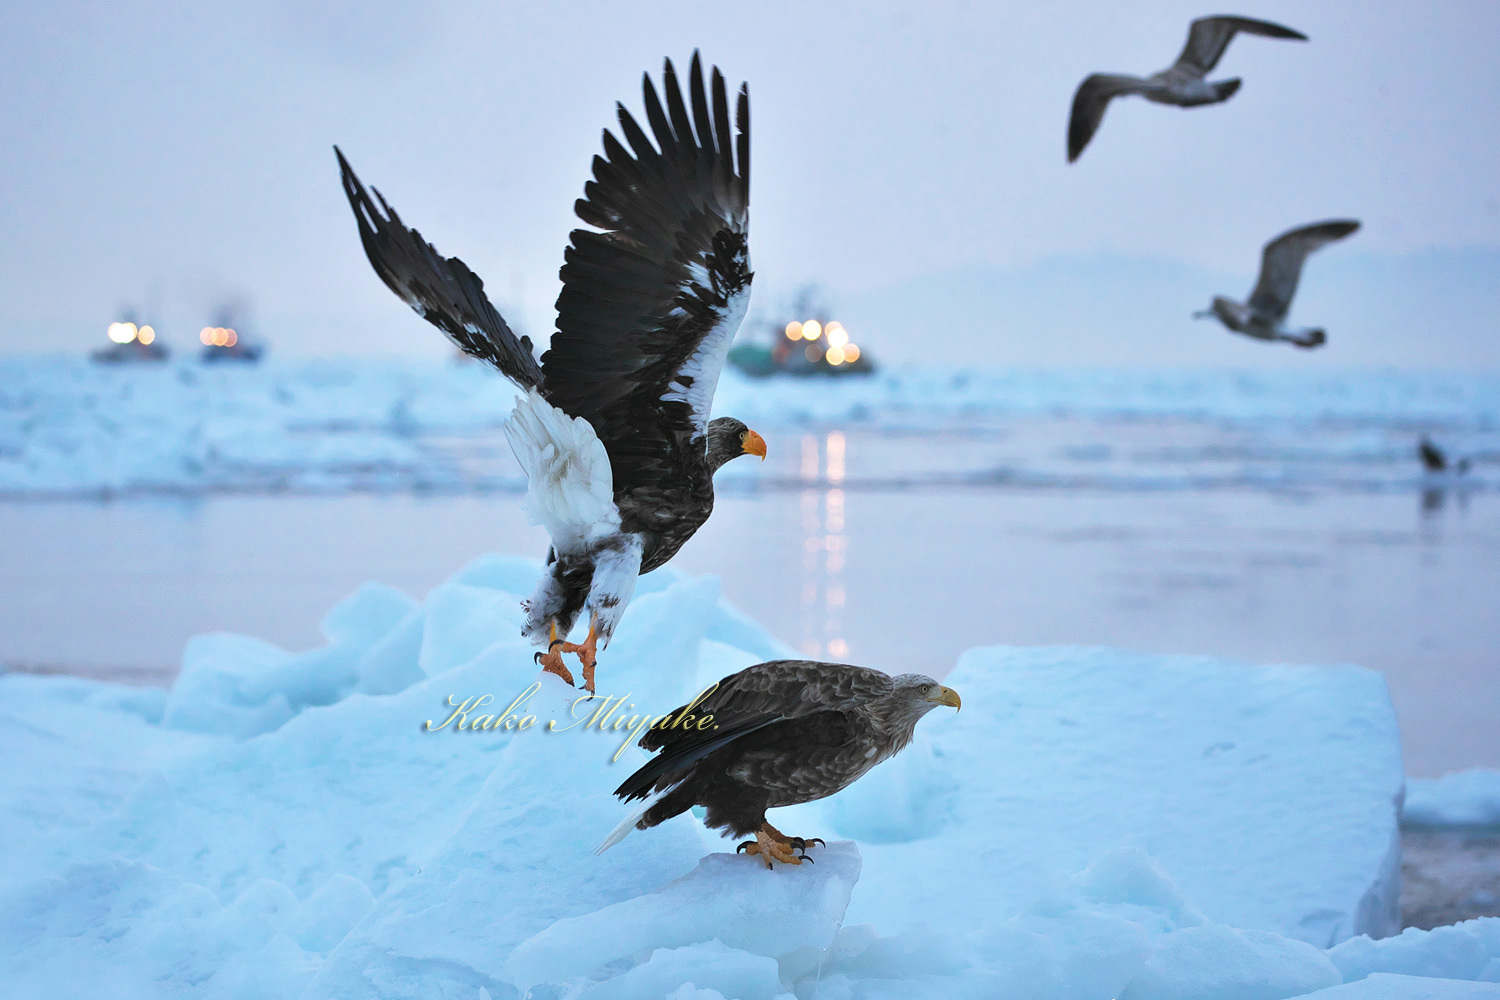 オオワシ(Steller\'s sea eagle )とオジロワシ(White-tailed eagle) _d0013455_12421709.jpg